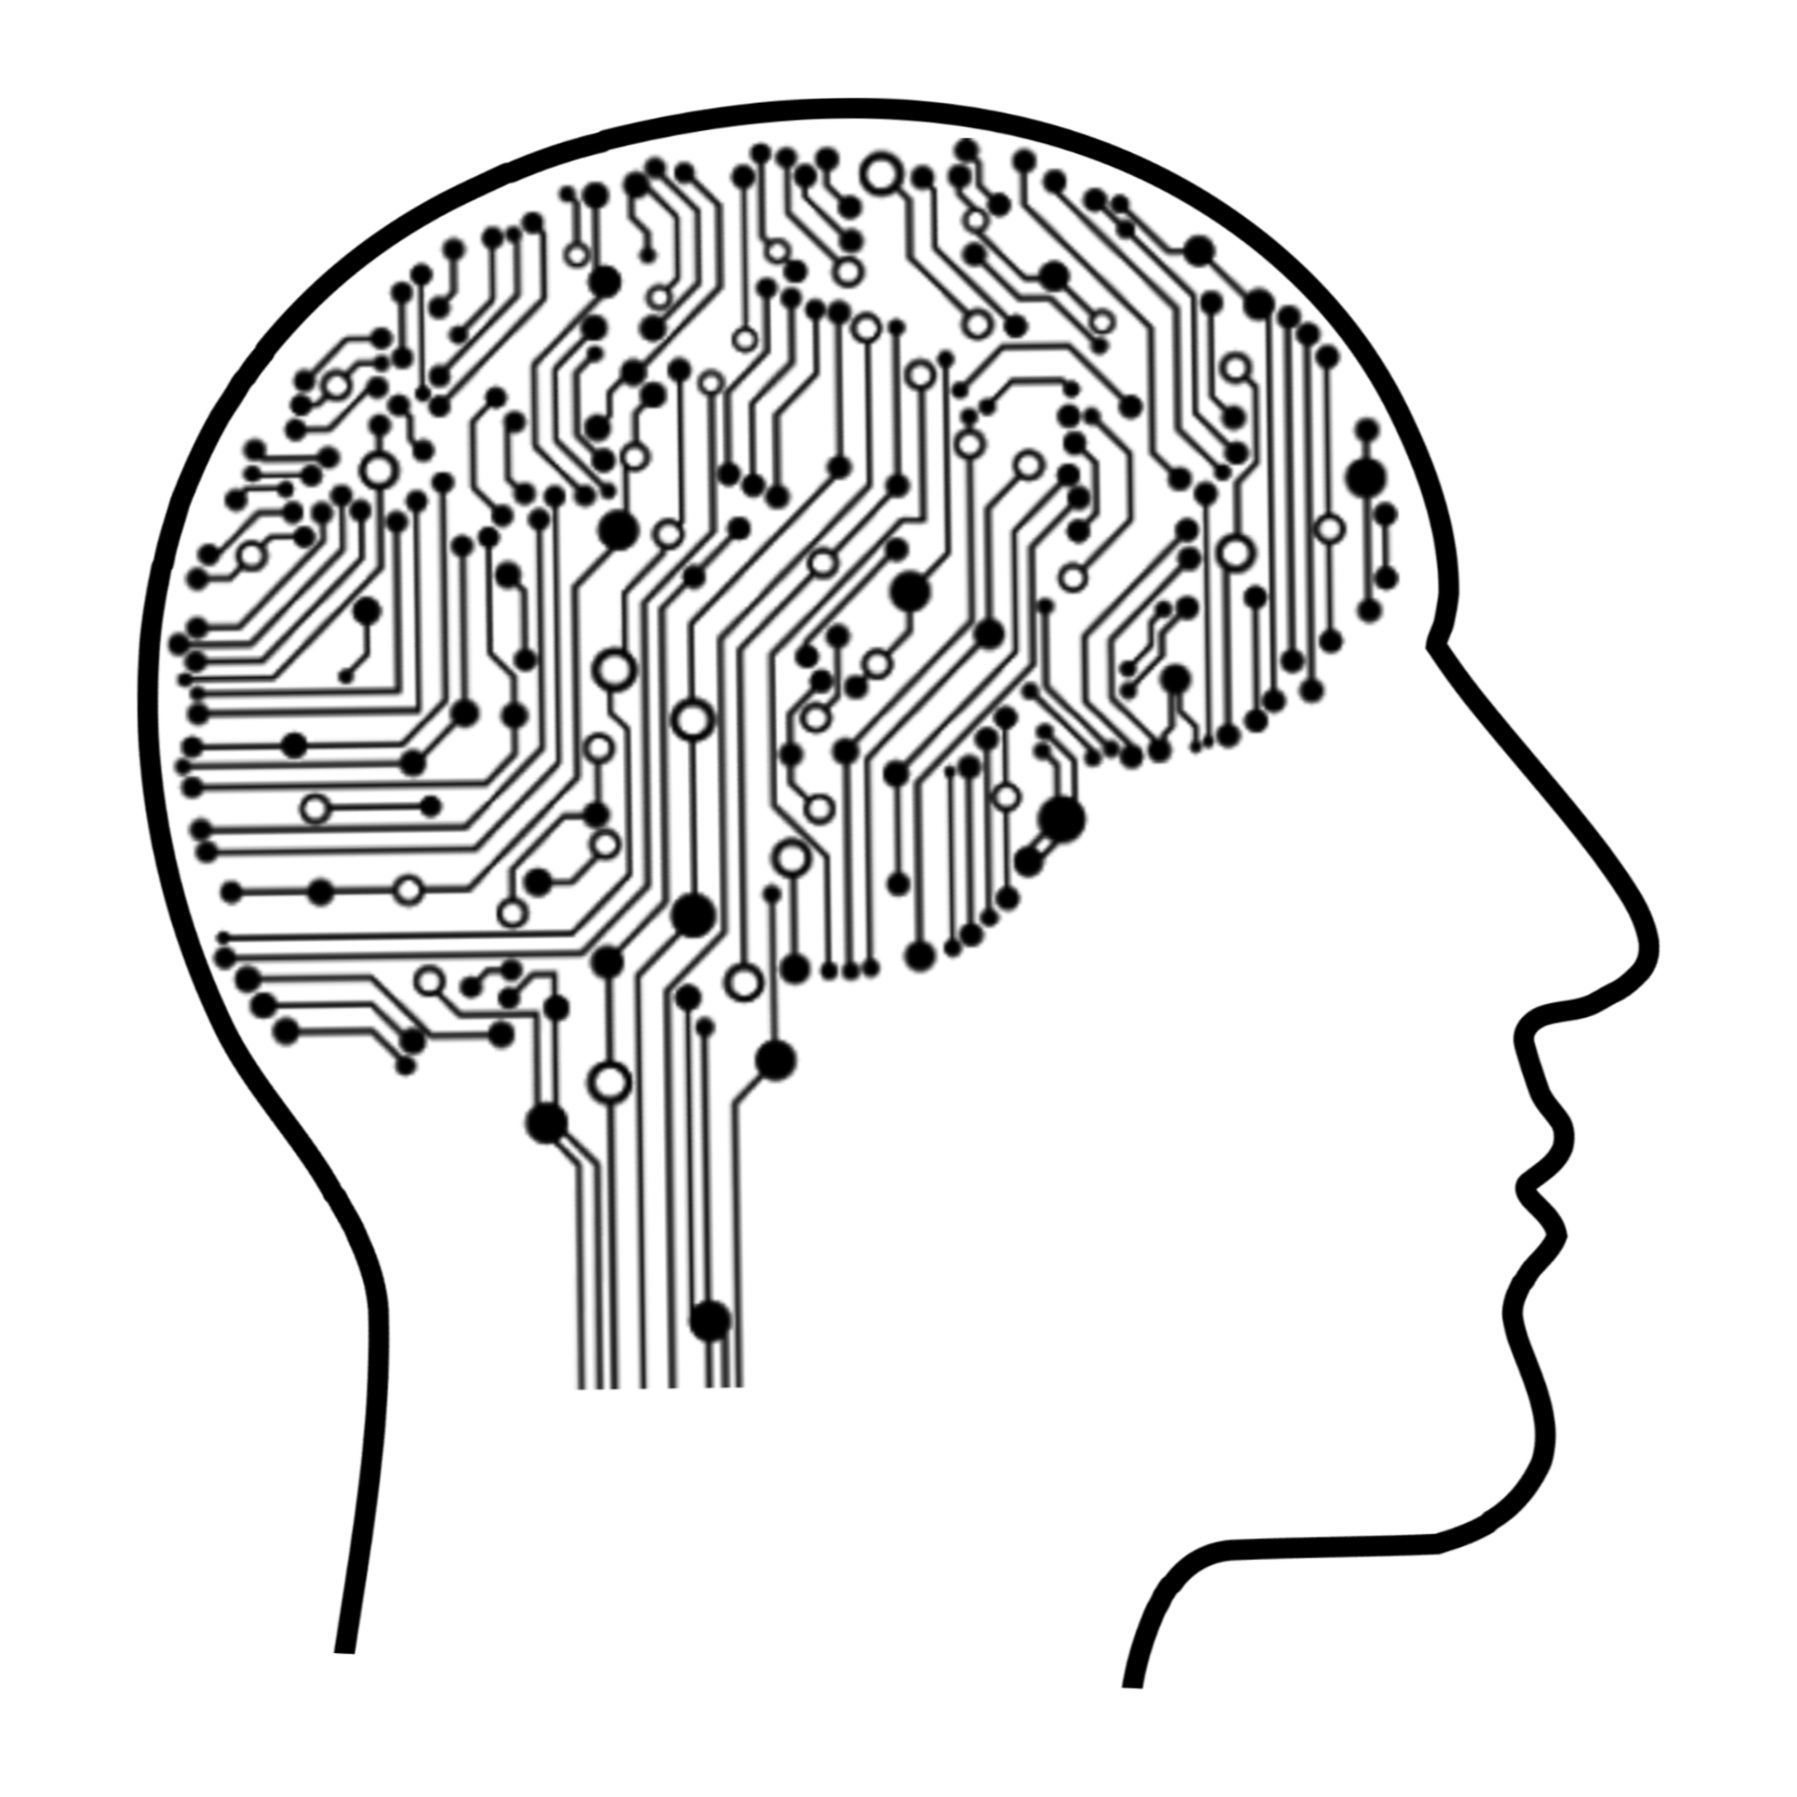 Use both logic and creativity to craft a meaningful and impactful user experience for you data. Image by mohamed Hassan from Pixabay. Brain as a circuit board.